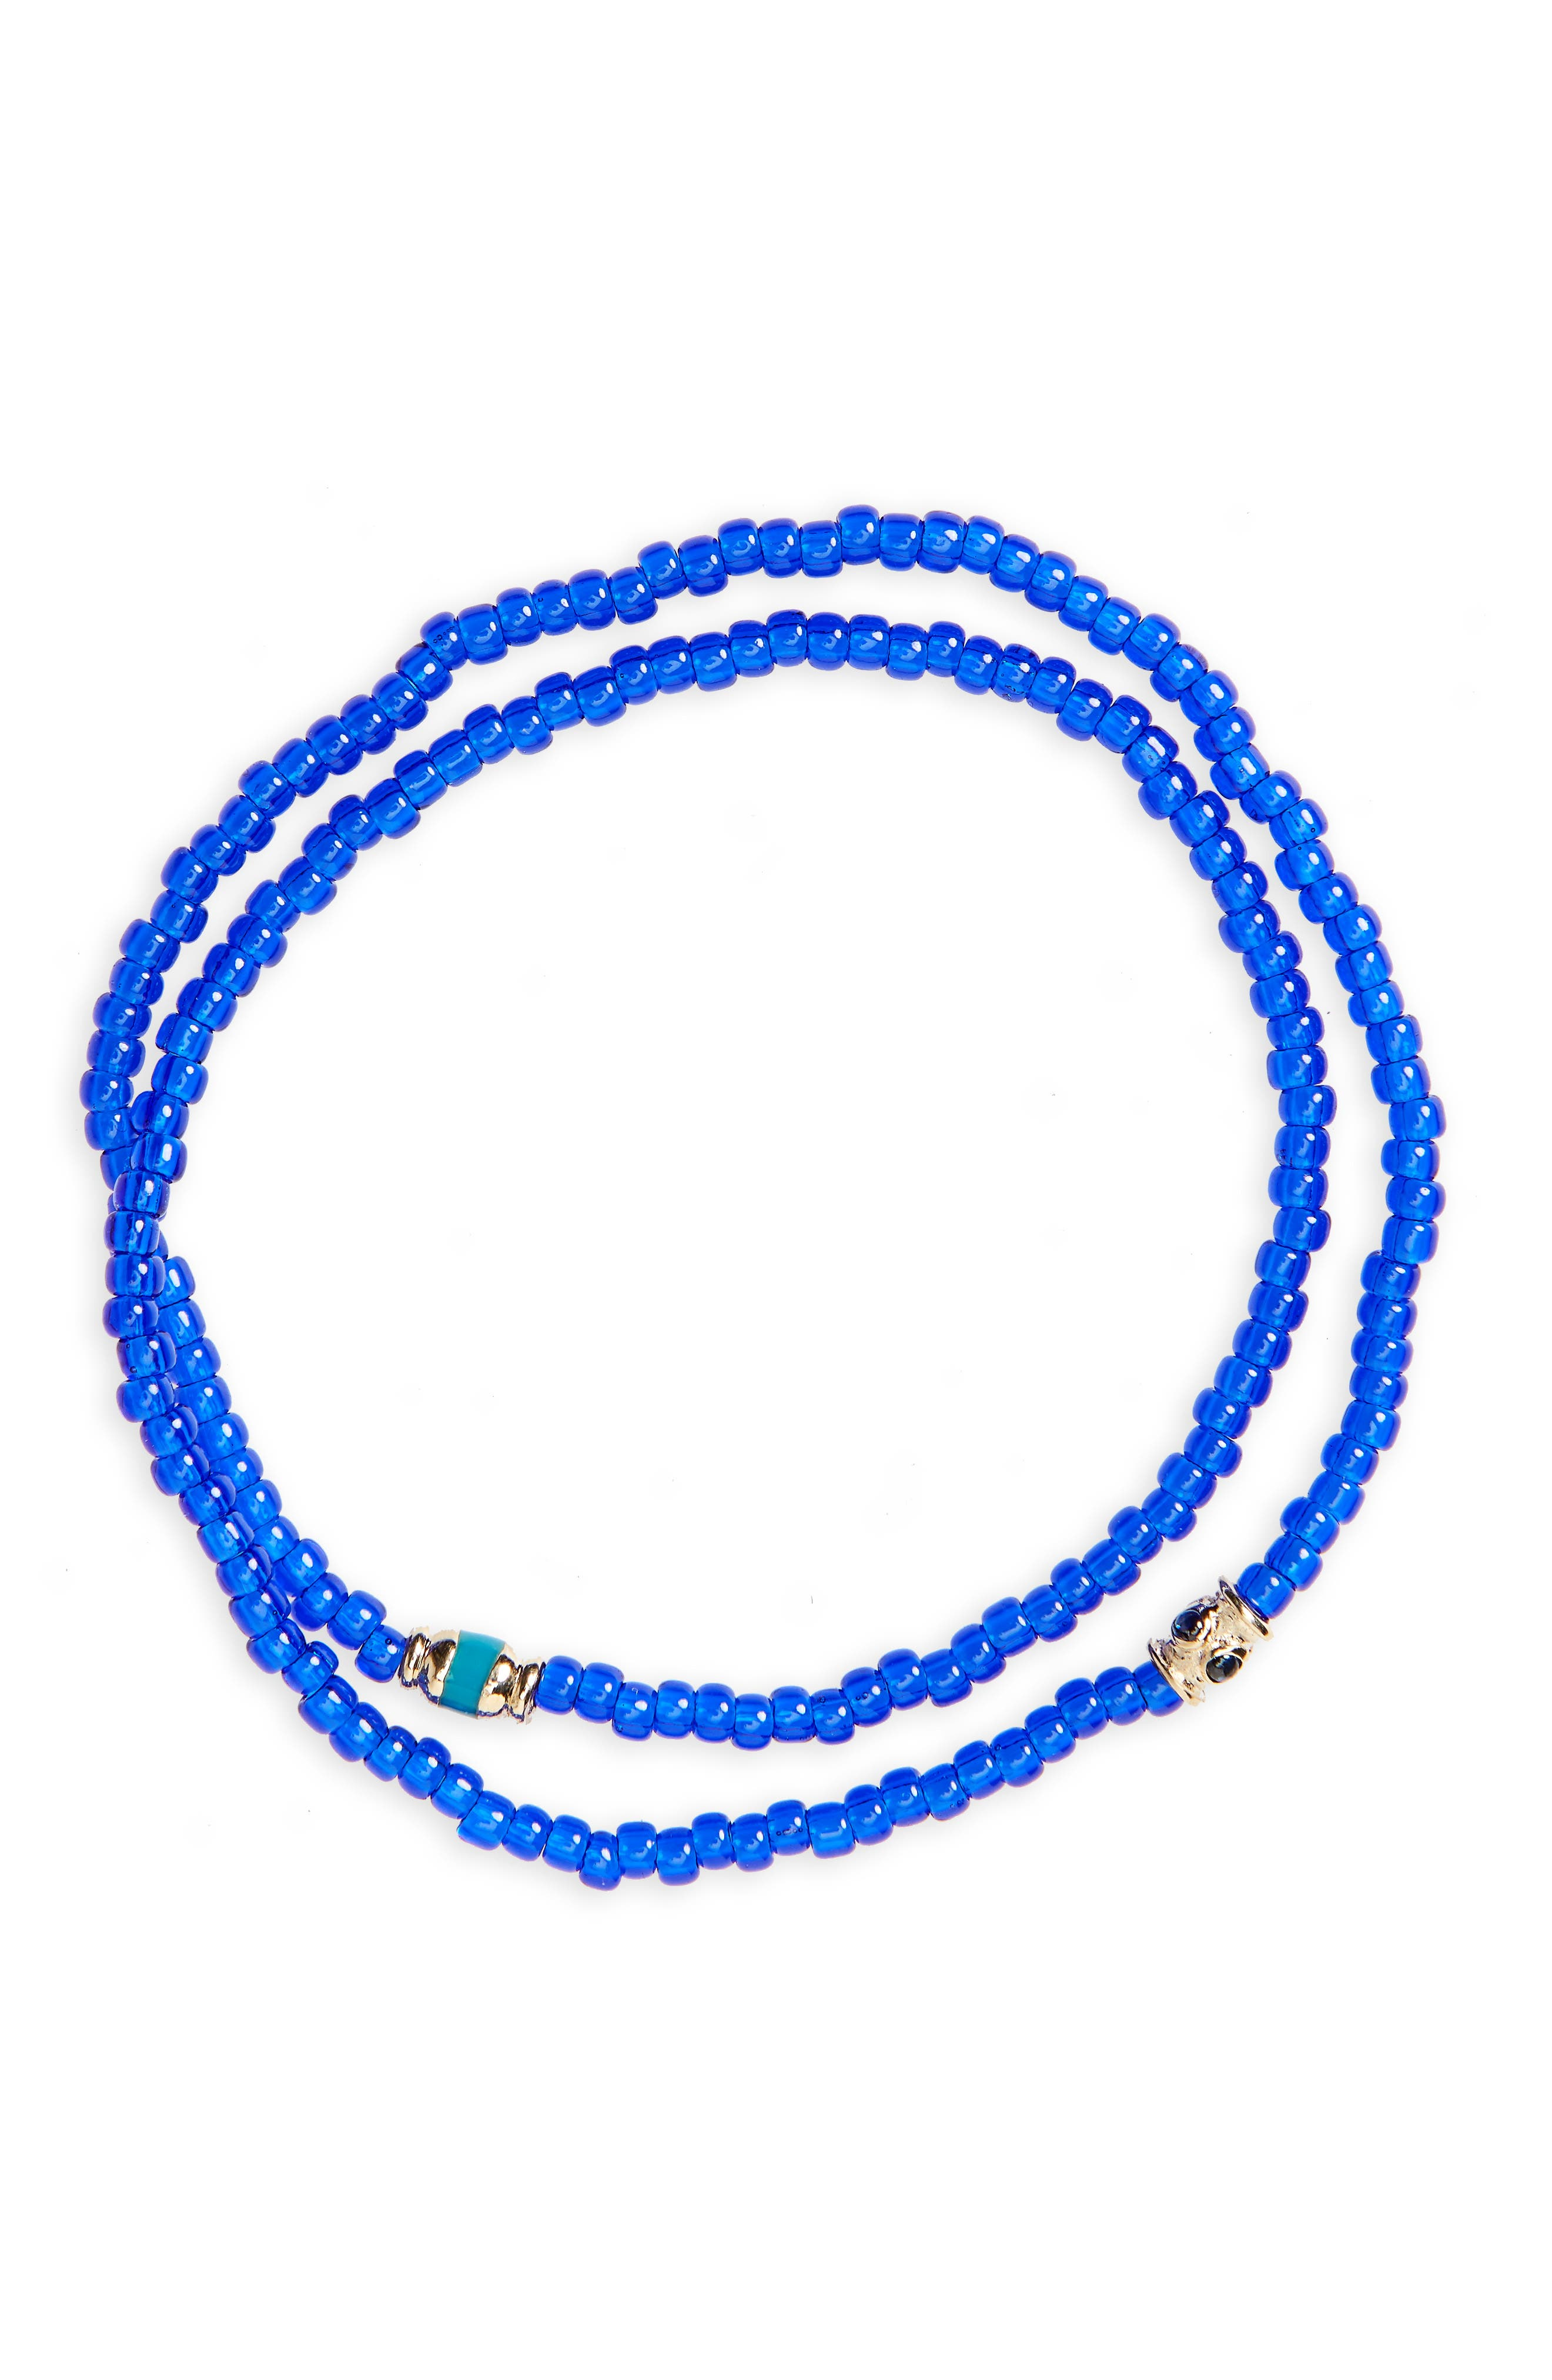 Sapphire and Gold Double Strand Stretch Bracelet,                             Main thumbnail 1, color,